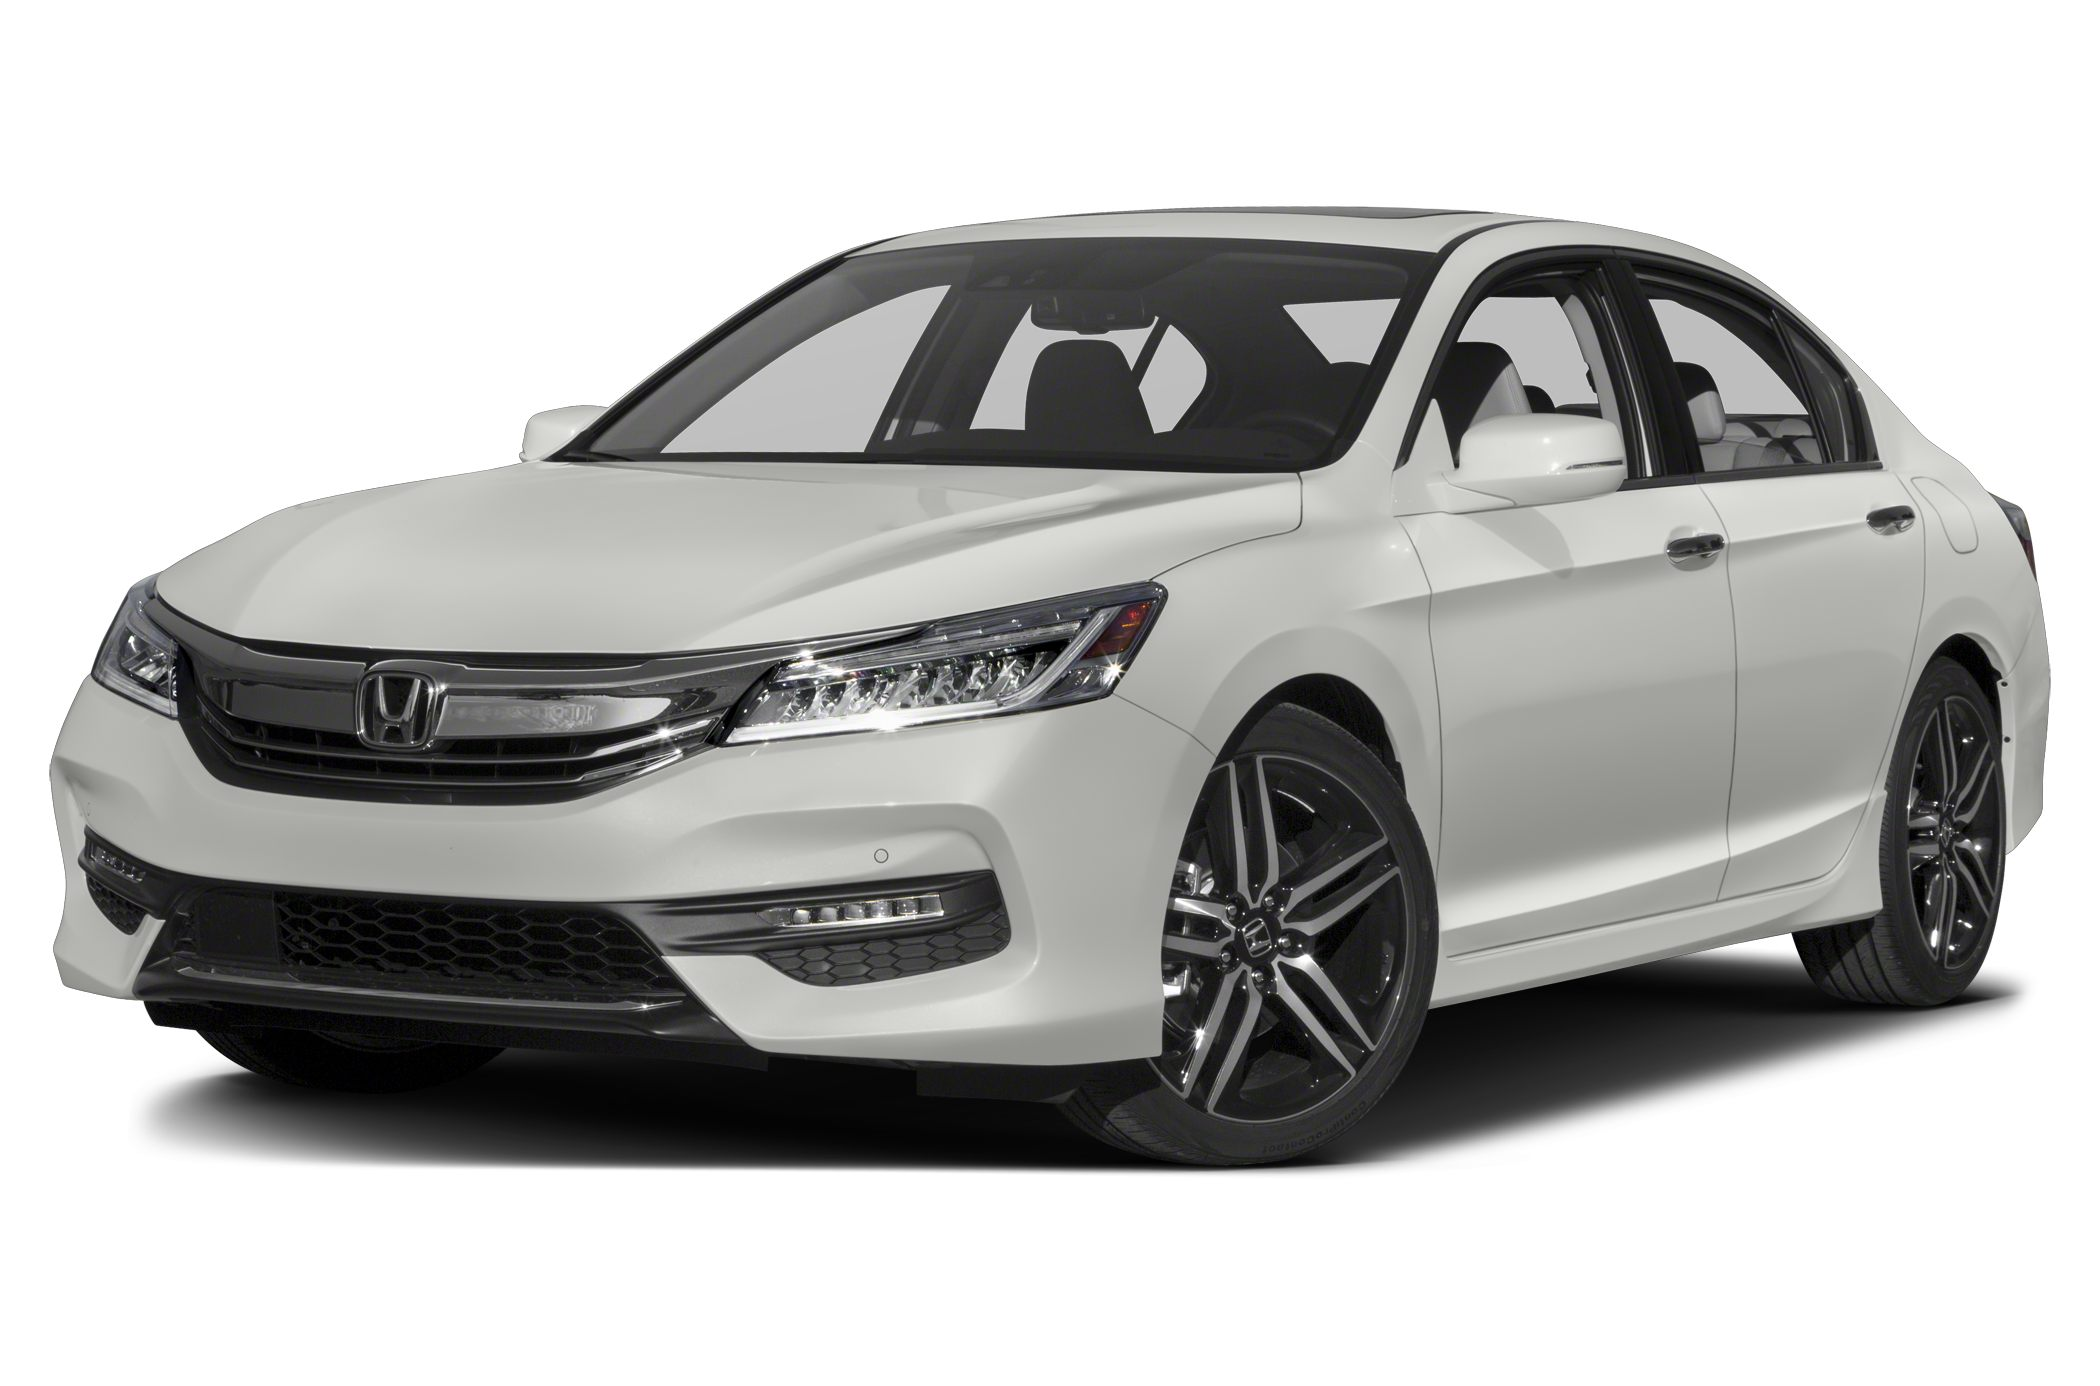 2016 Honda Accord Sport For Sale >> 2016 Honda Accord Touring 4dr Sedan For Sale